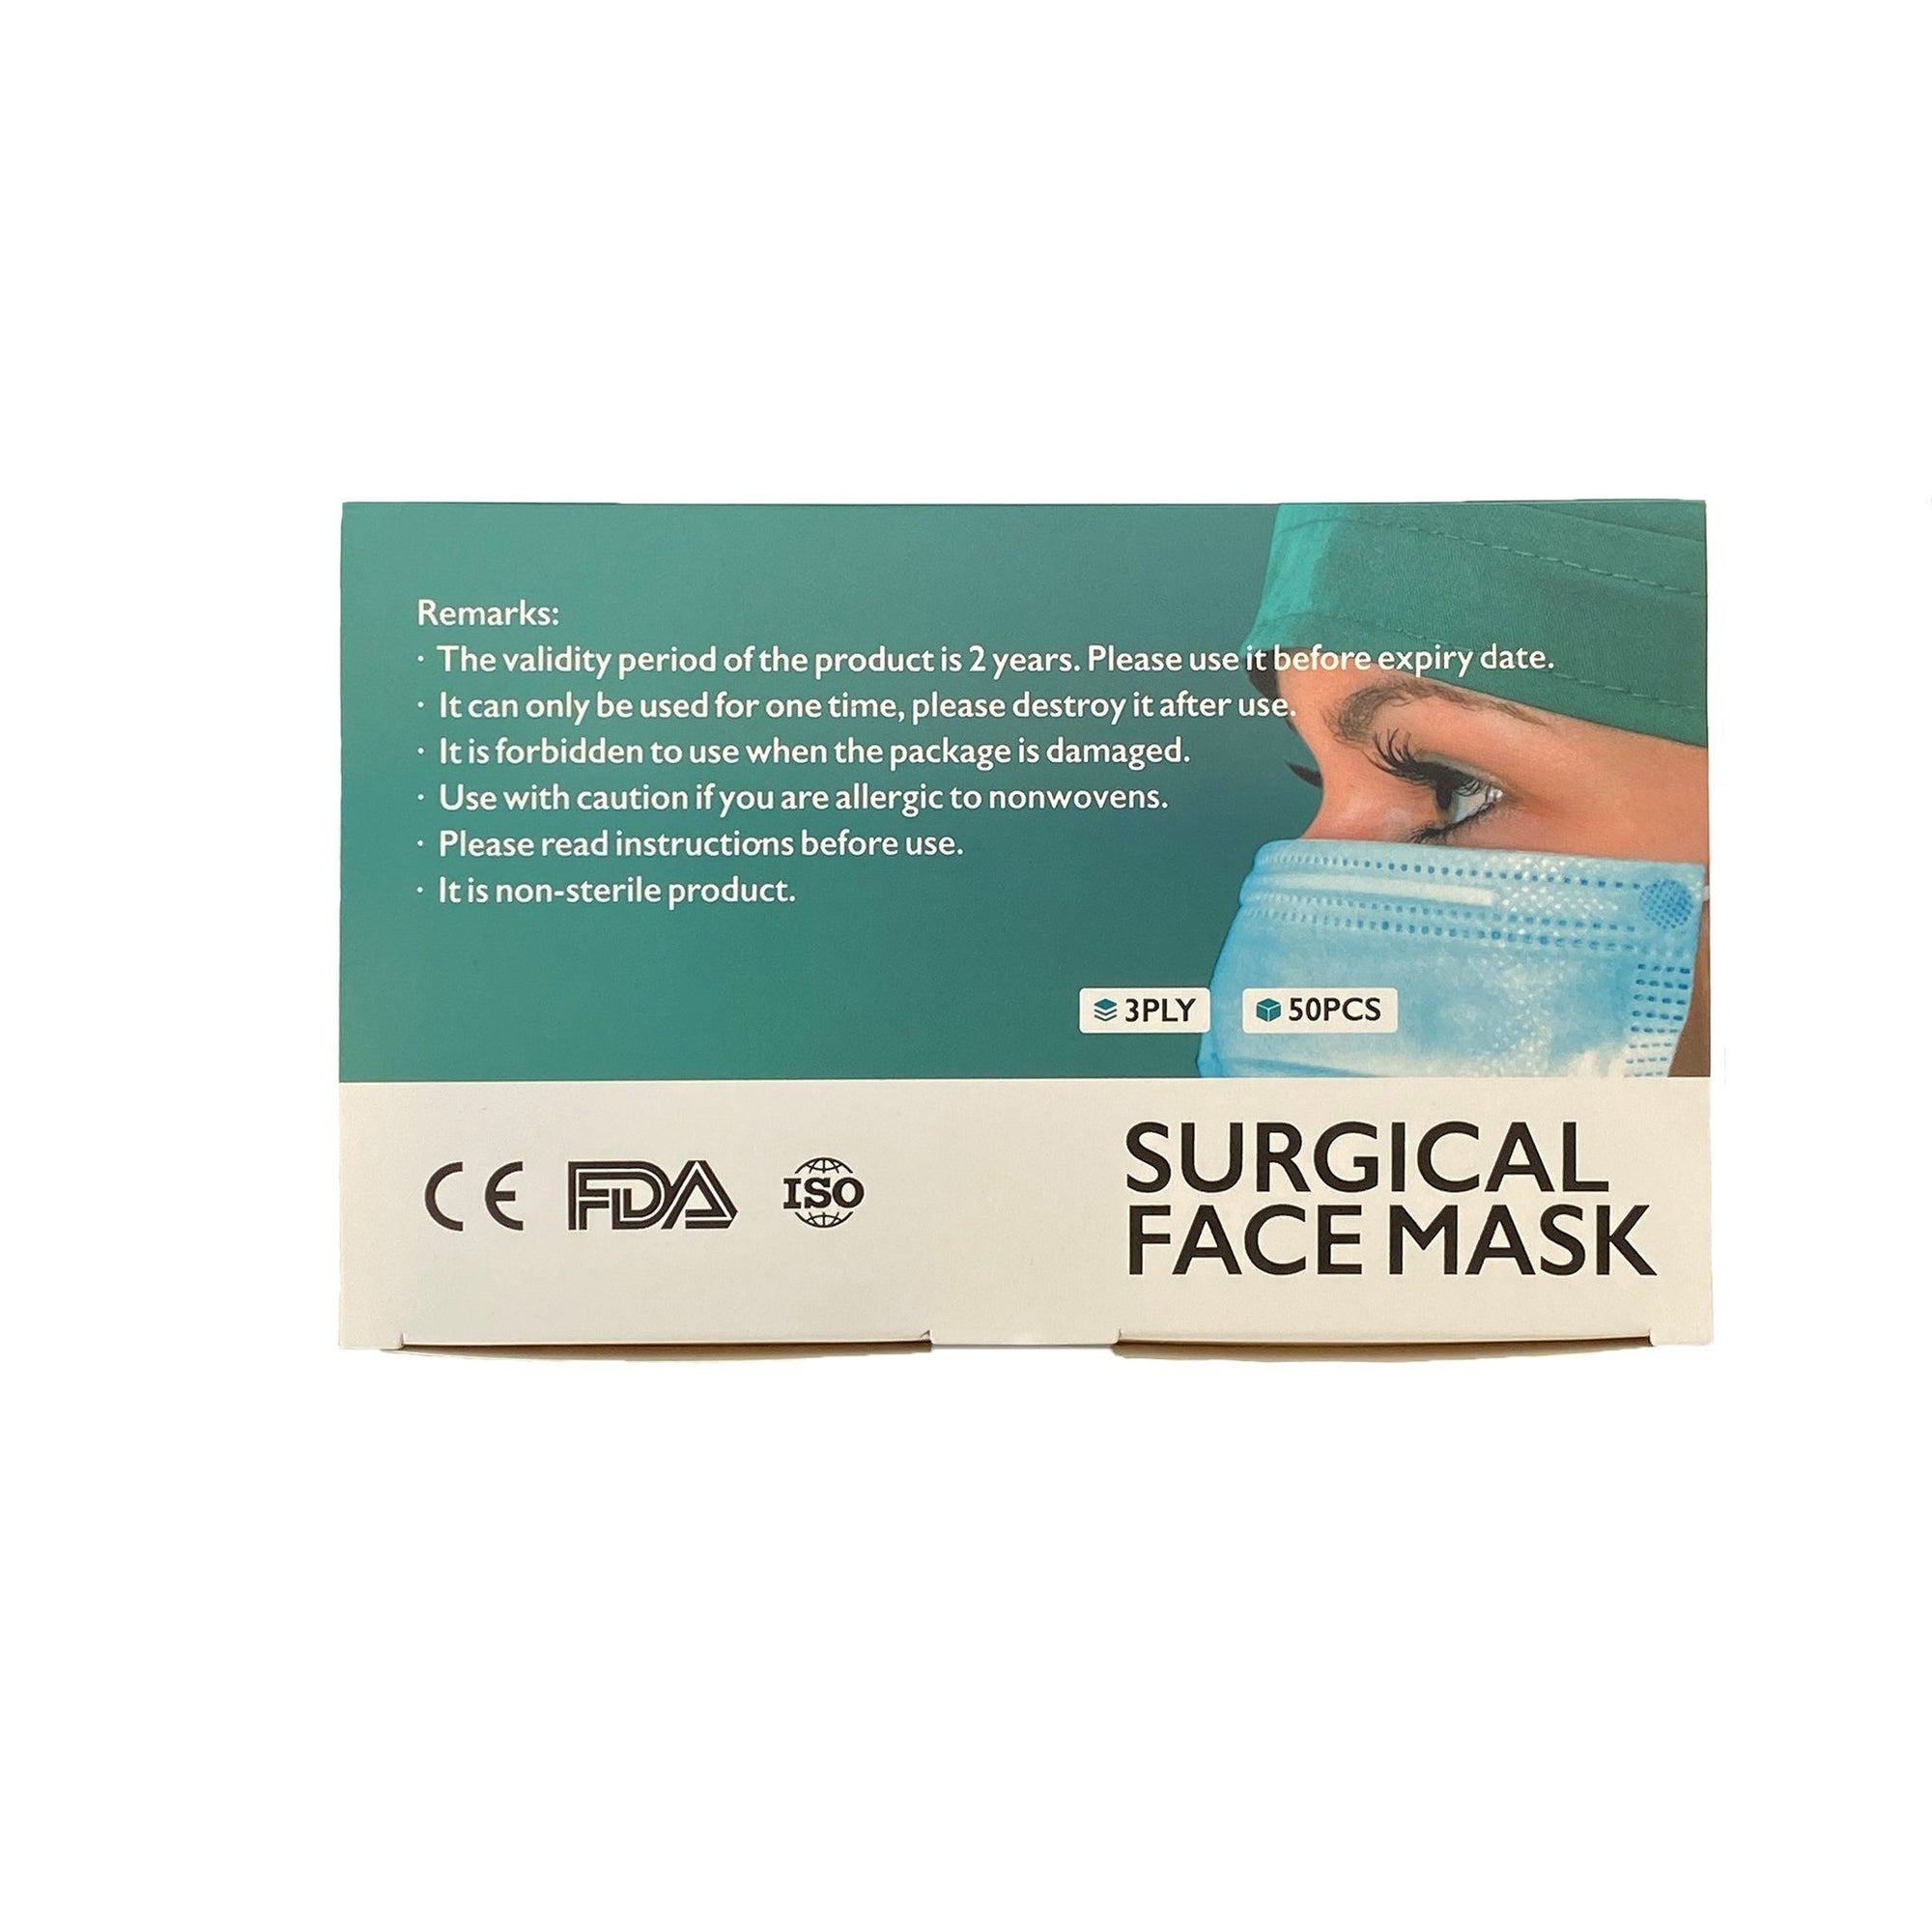 Surgical Face Masks ASTM 1 - Box of 50 Covid19 SportsPower Geelong